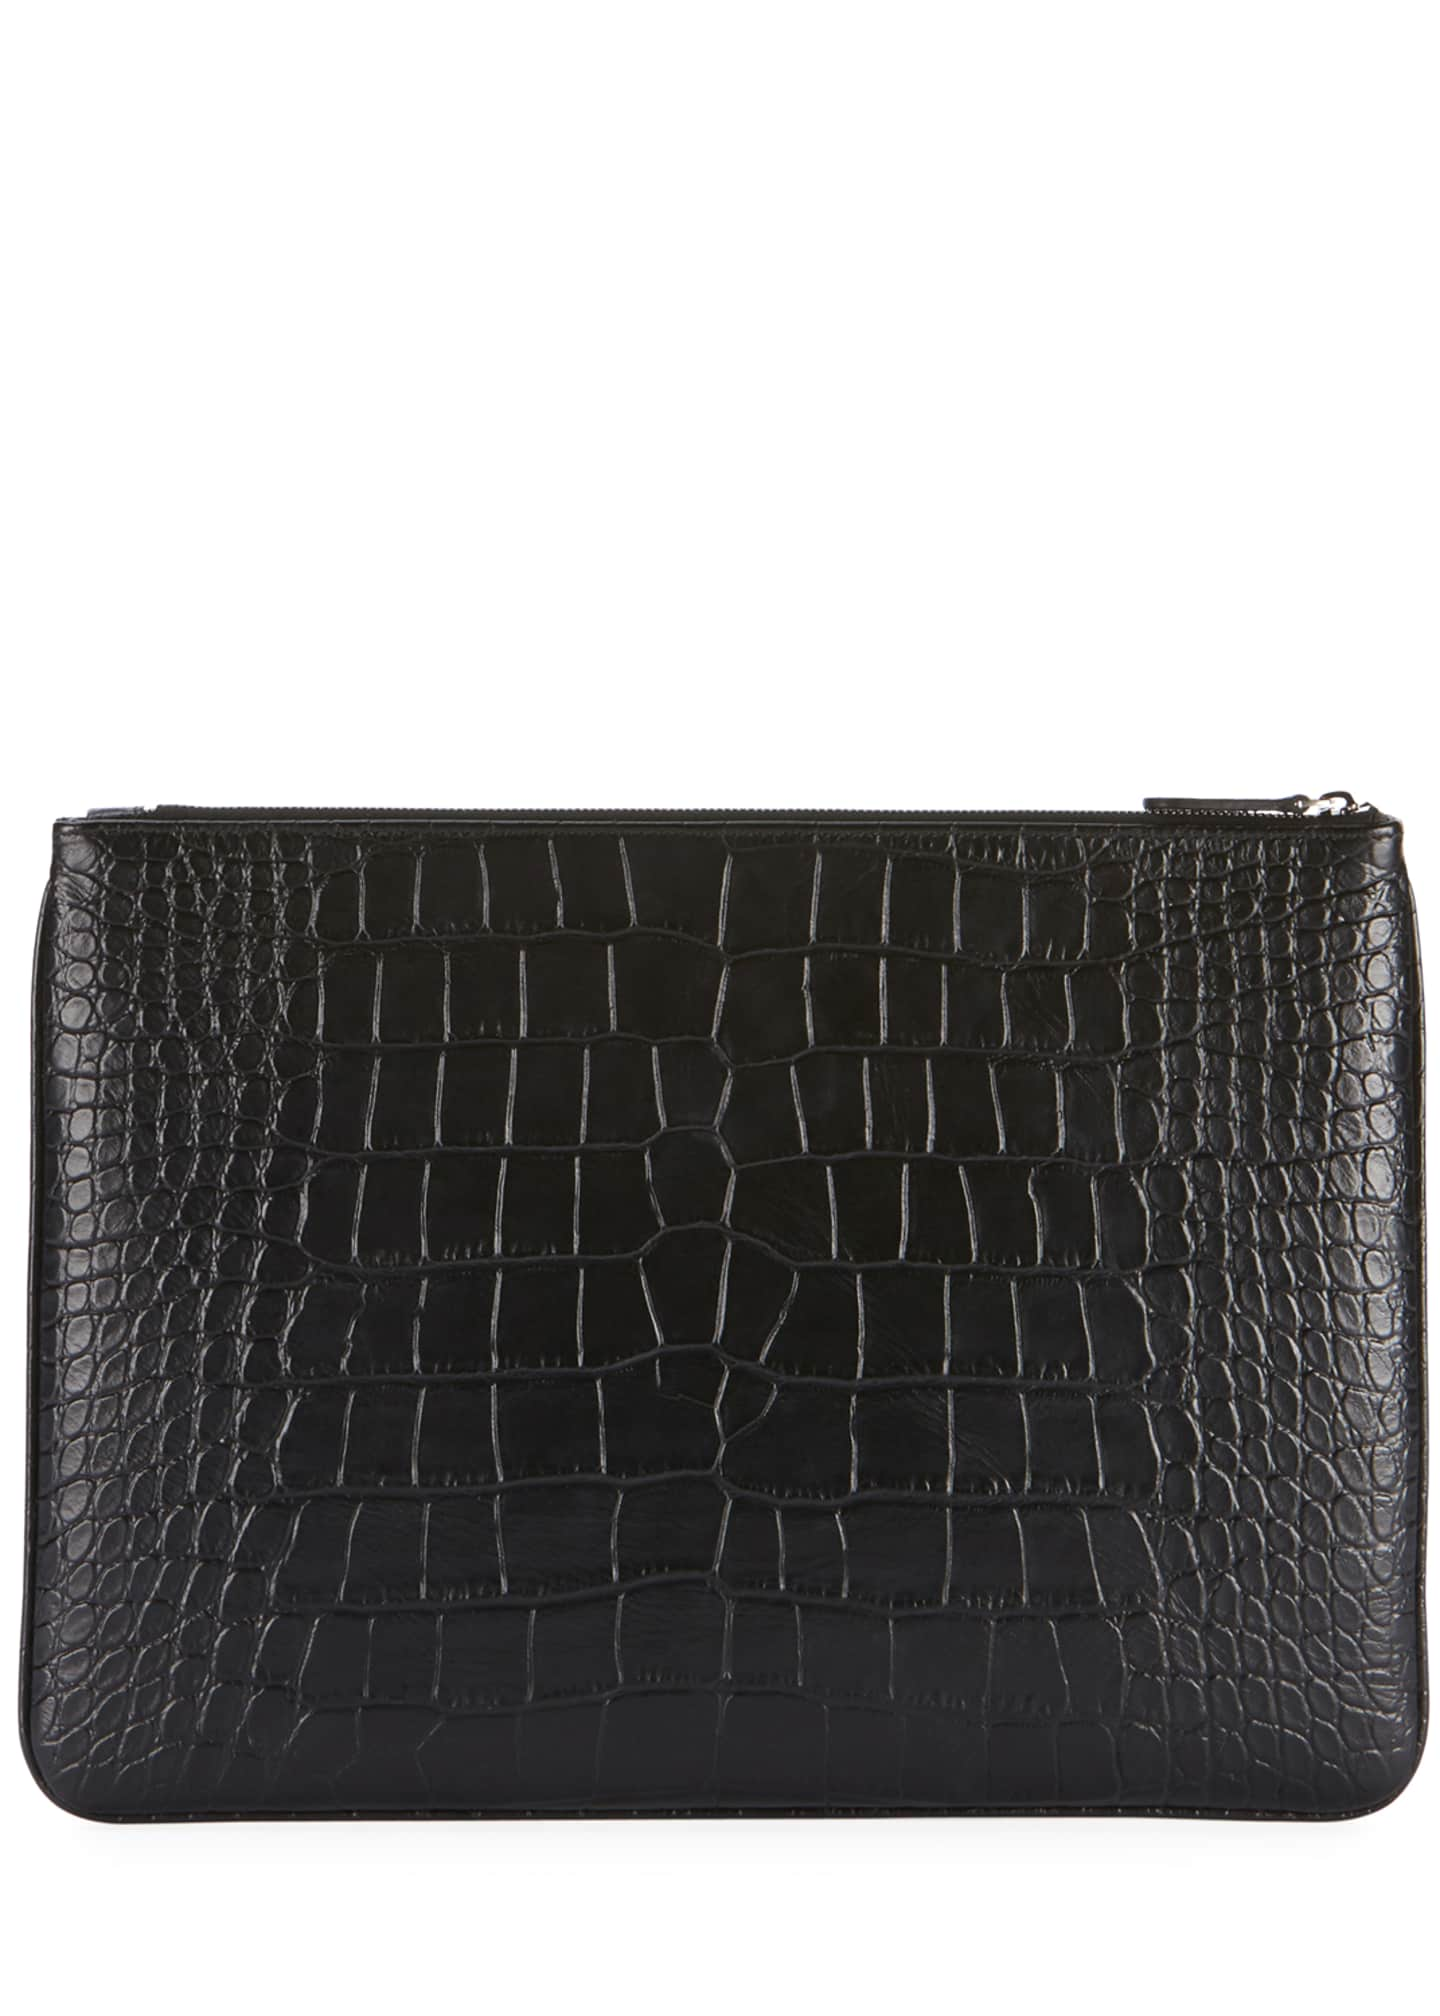 Image 2 of 2: Men's Ville Croc-Embossed Leather Pouch Bag